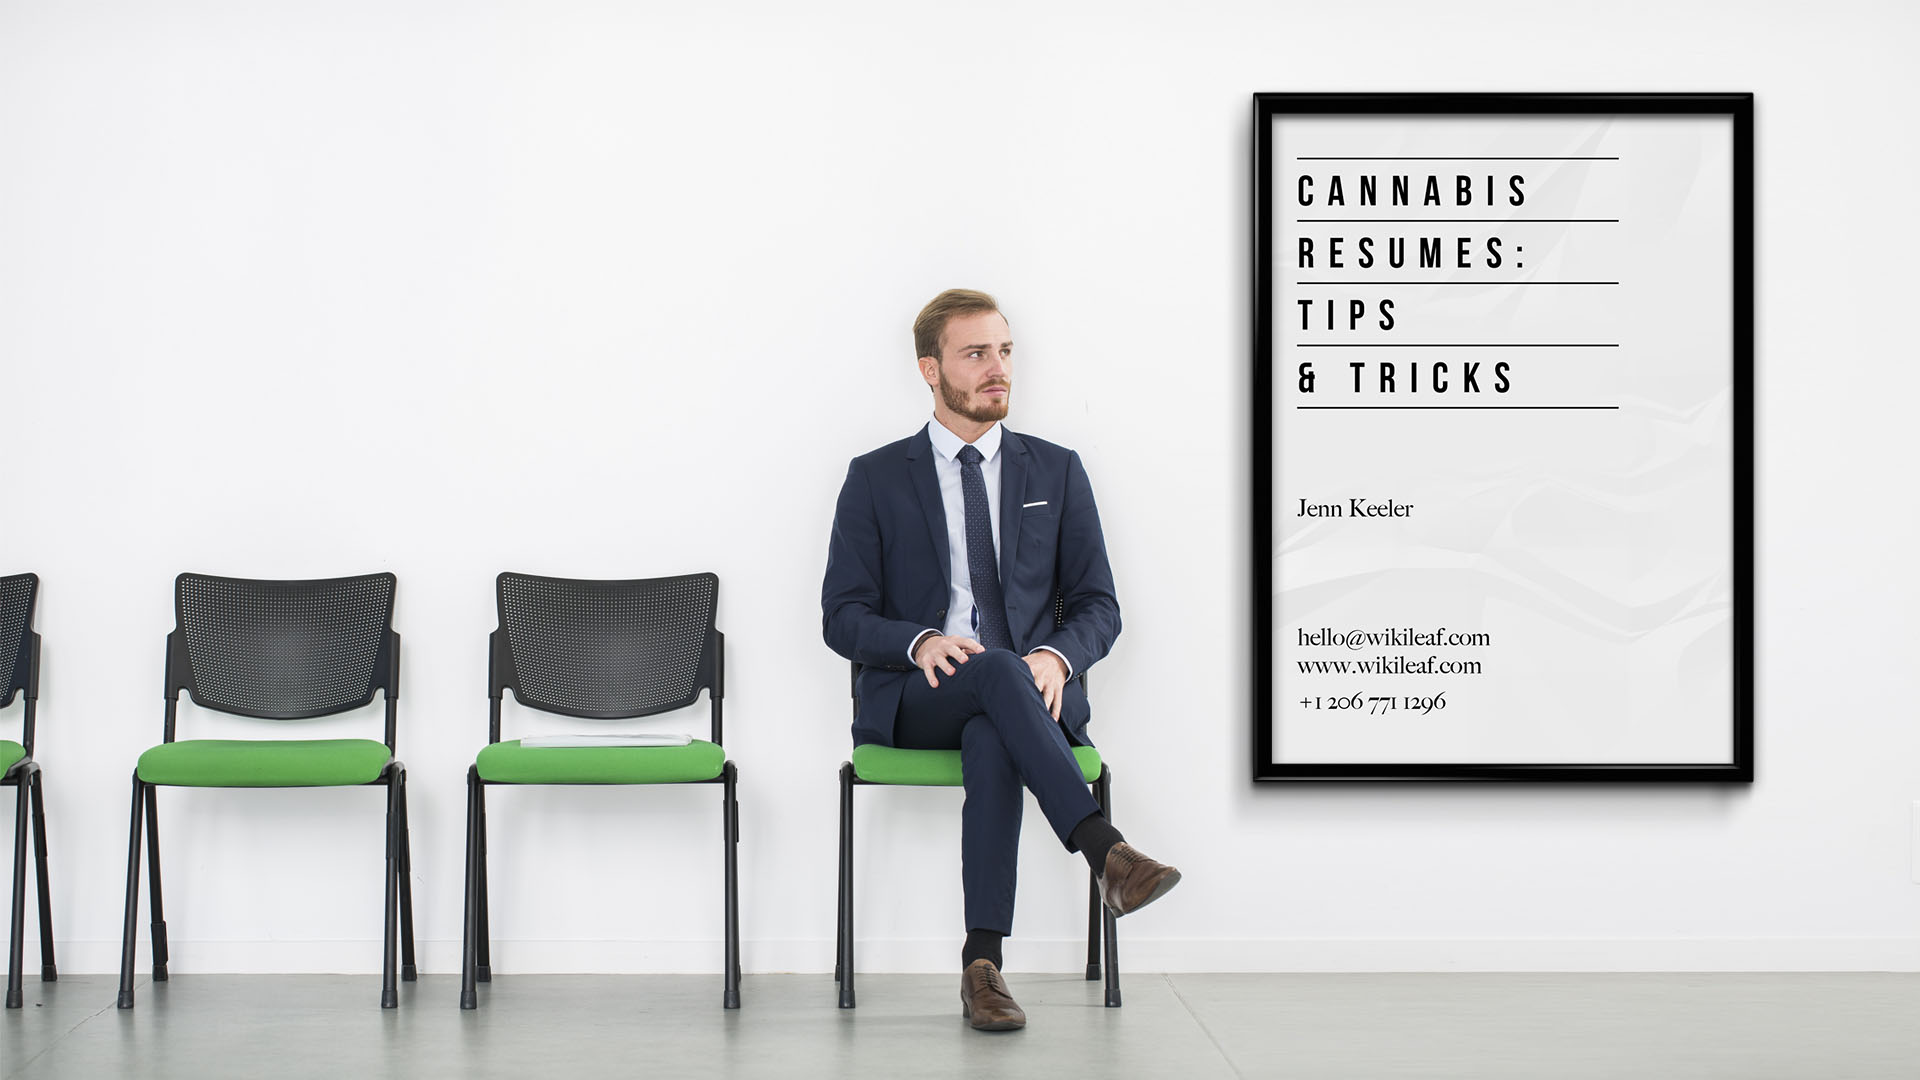 basics of a great cannabis resume dos and donts